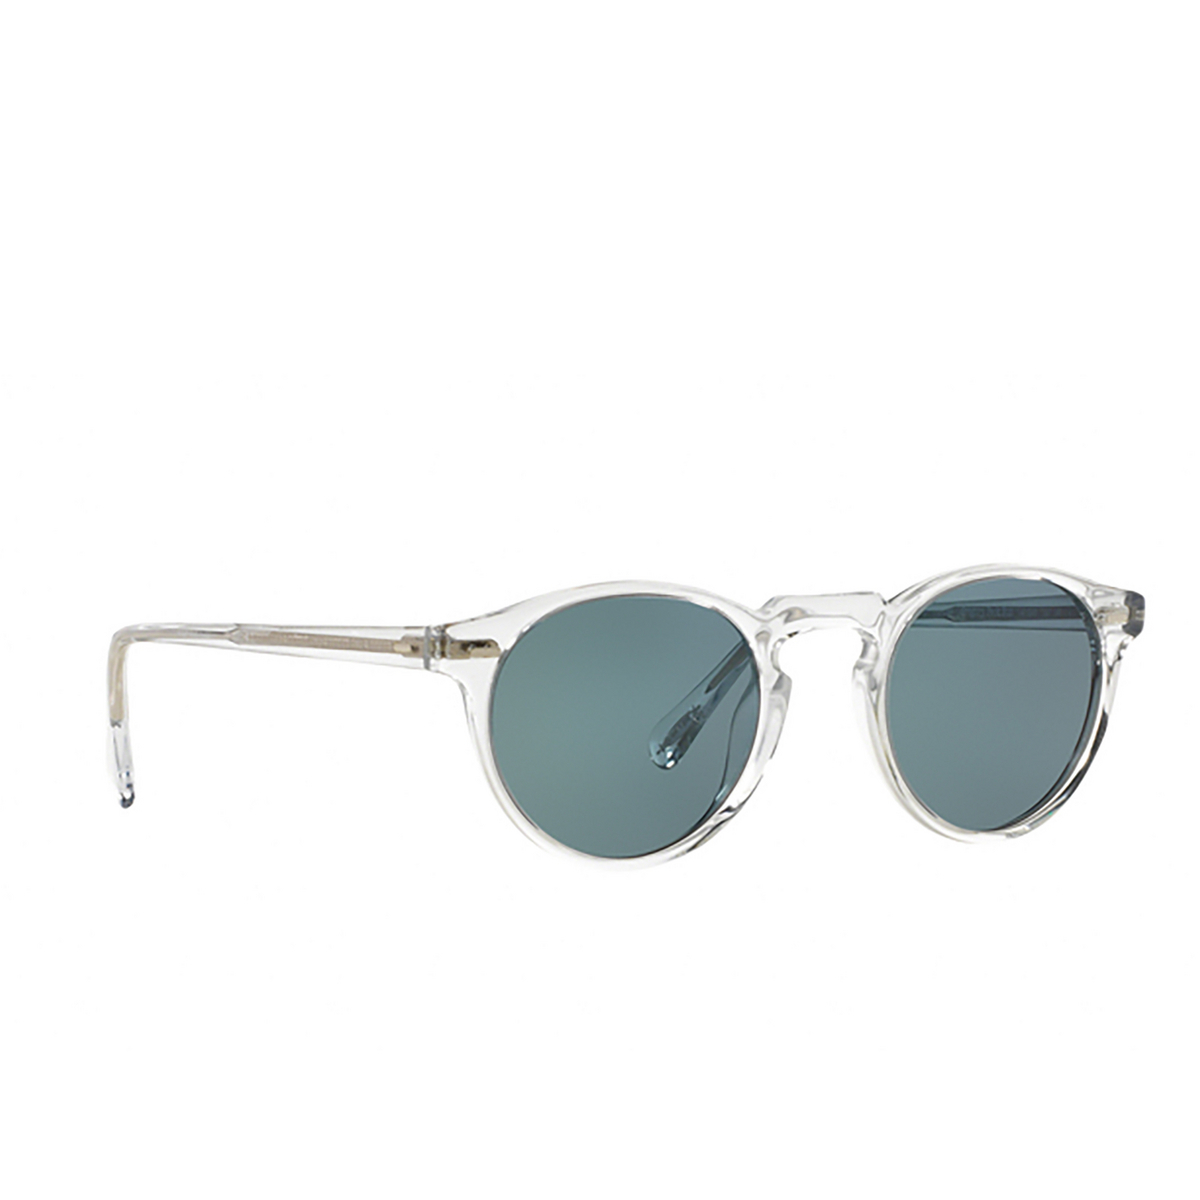 Oliver Peoples® Round Sunglasses: Gregory Peck Sun OV5217S color Crystal 1101R8 - three-quarters view.